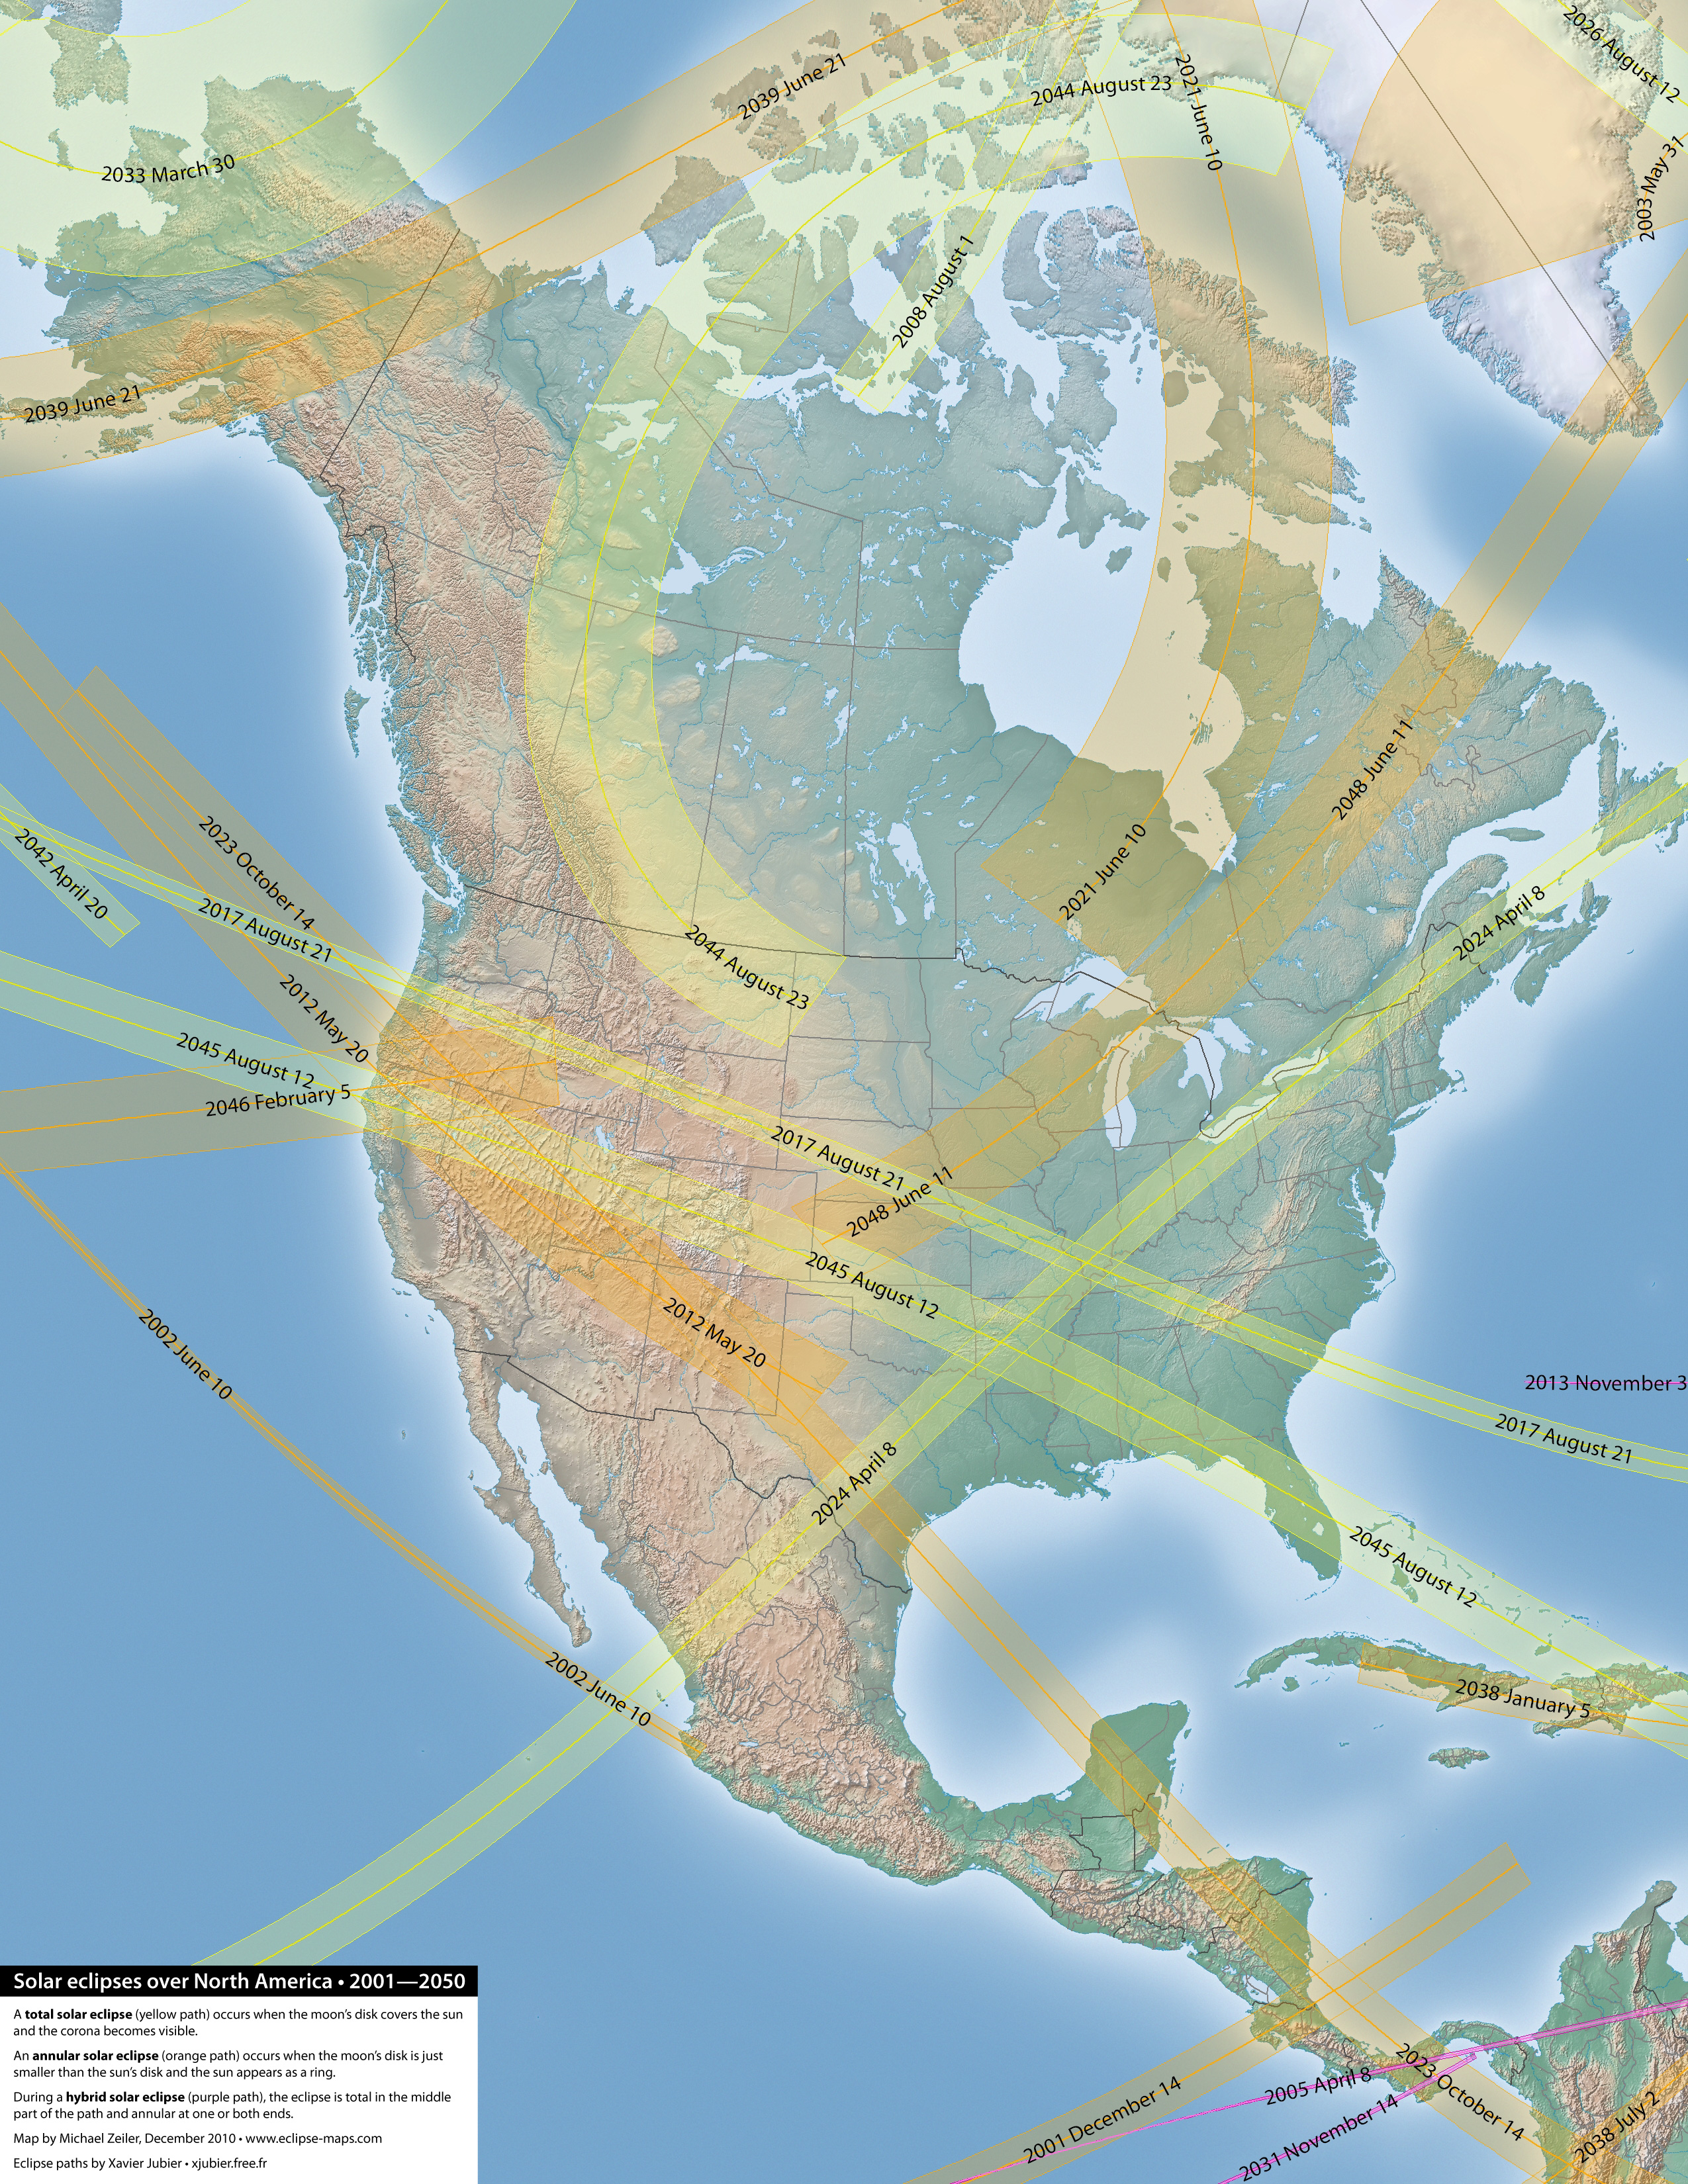 Map Of America 2050.Every Solar Eclipse Over North America Between 2000 And 2050